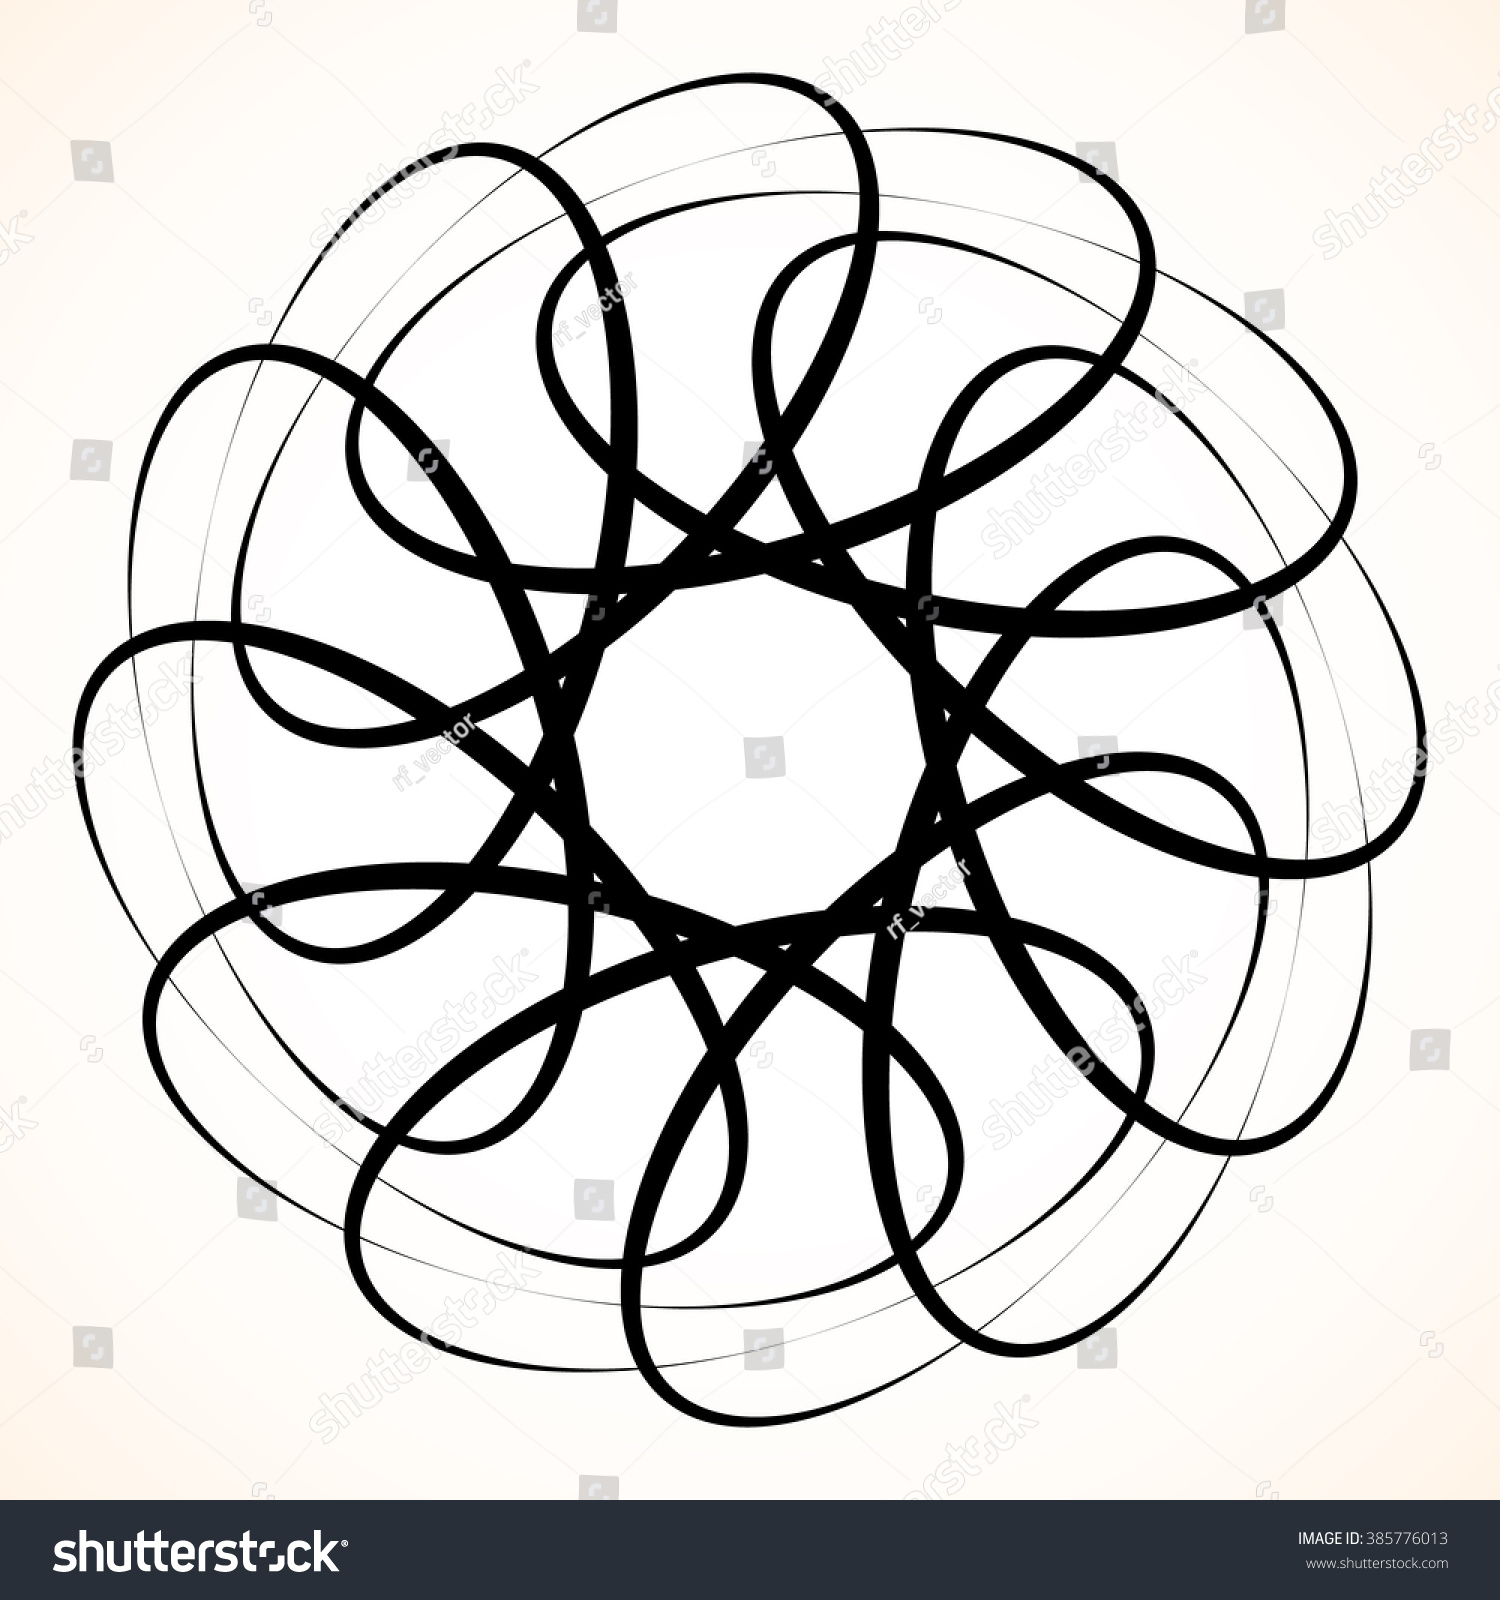 Abstract Circular Element Spinning Swirling Forms Stock Illustration ...